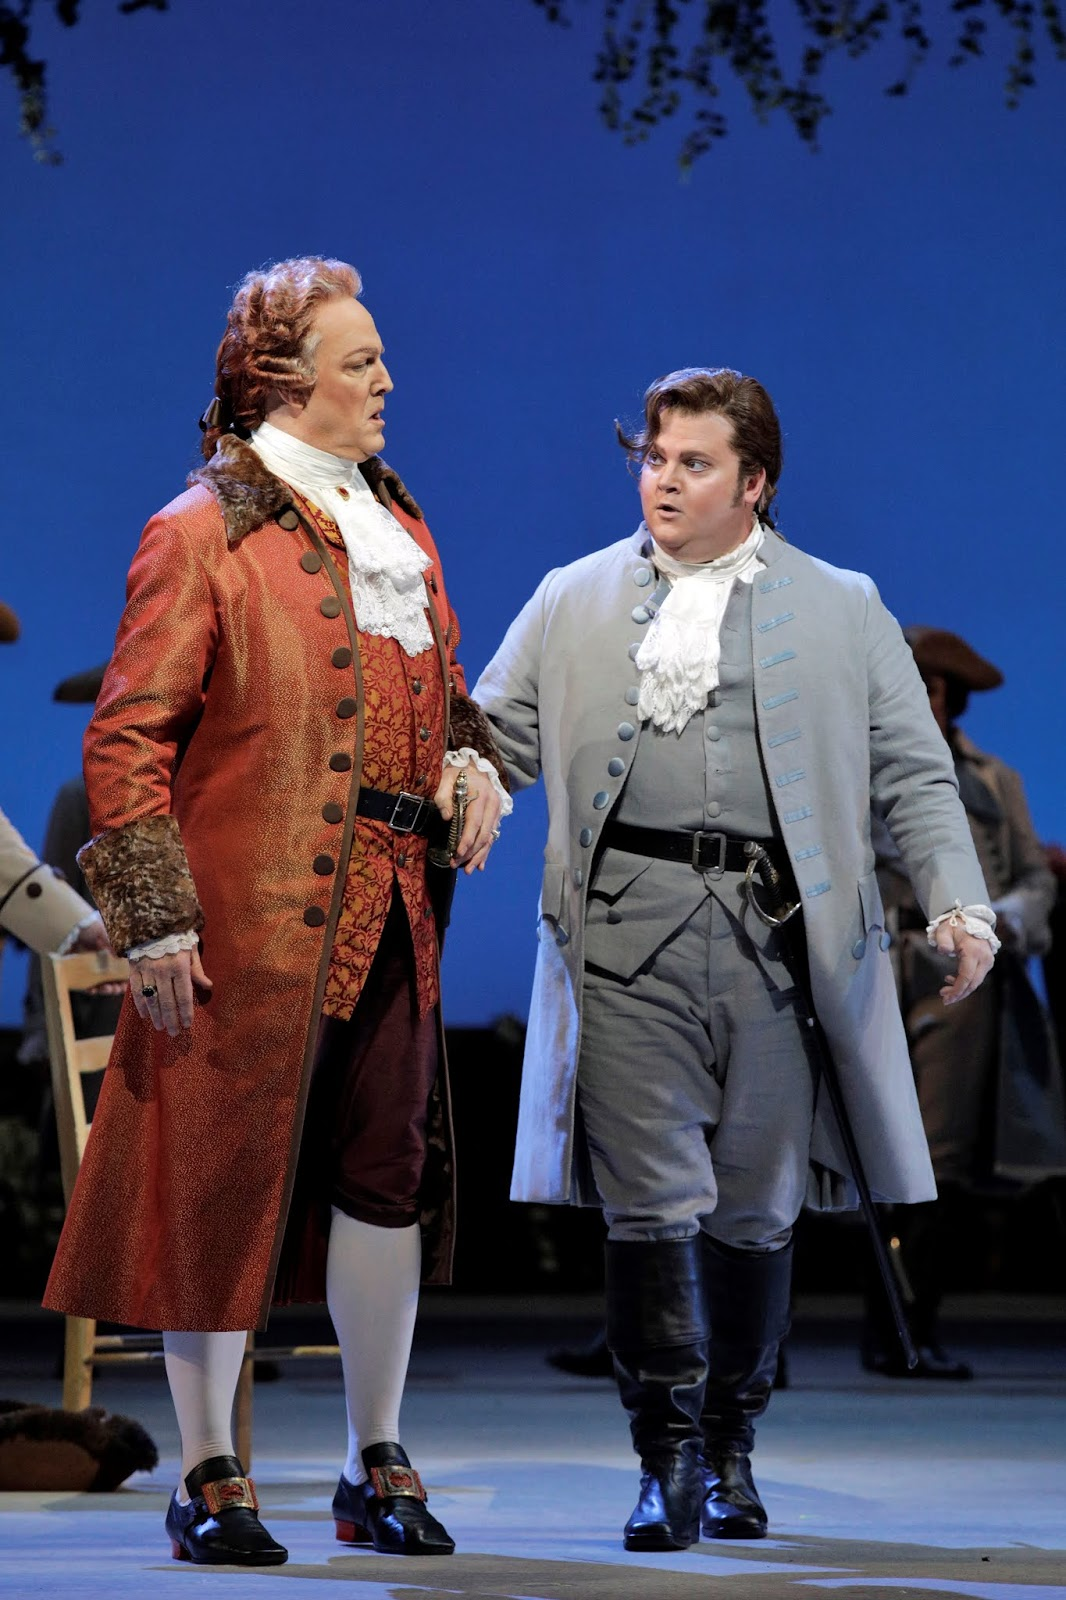 IN REVIEW: bass-baritone PHILIP SKINNER as Geronte (left) and baritone ANTHONY CLARK EVANS as Lescaut (right) in San Francisco Opera's November 2019 production of Giacomo Puccini's MANON LESCAUT [Photograph by Cory Weaver, © by San Francisco Opera]